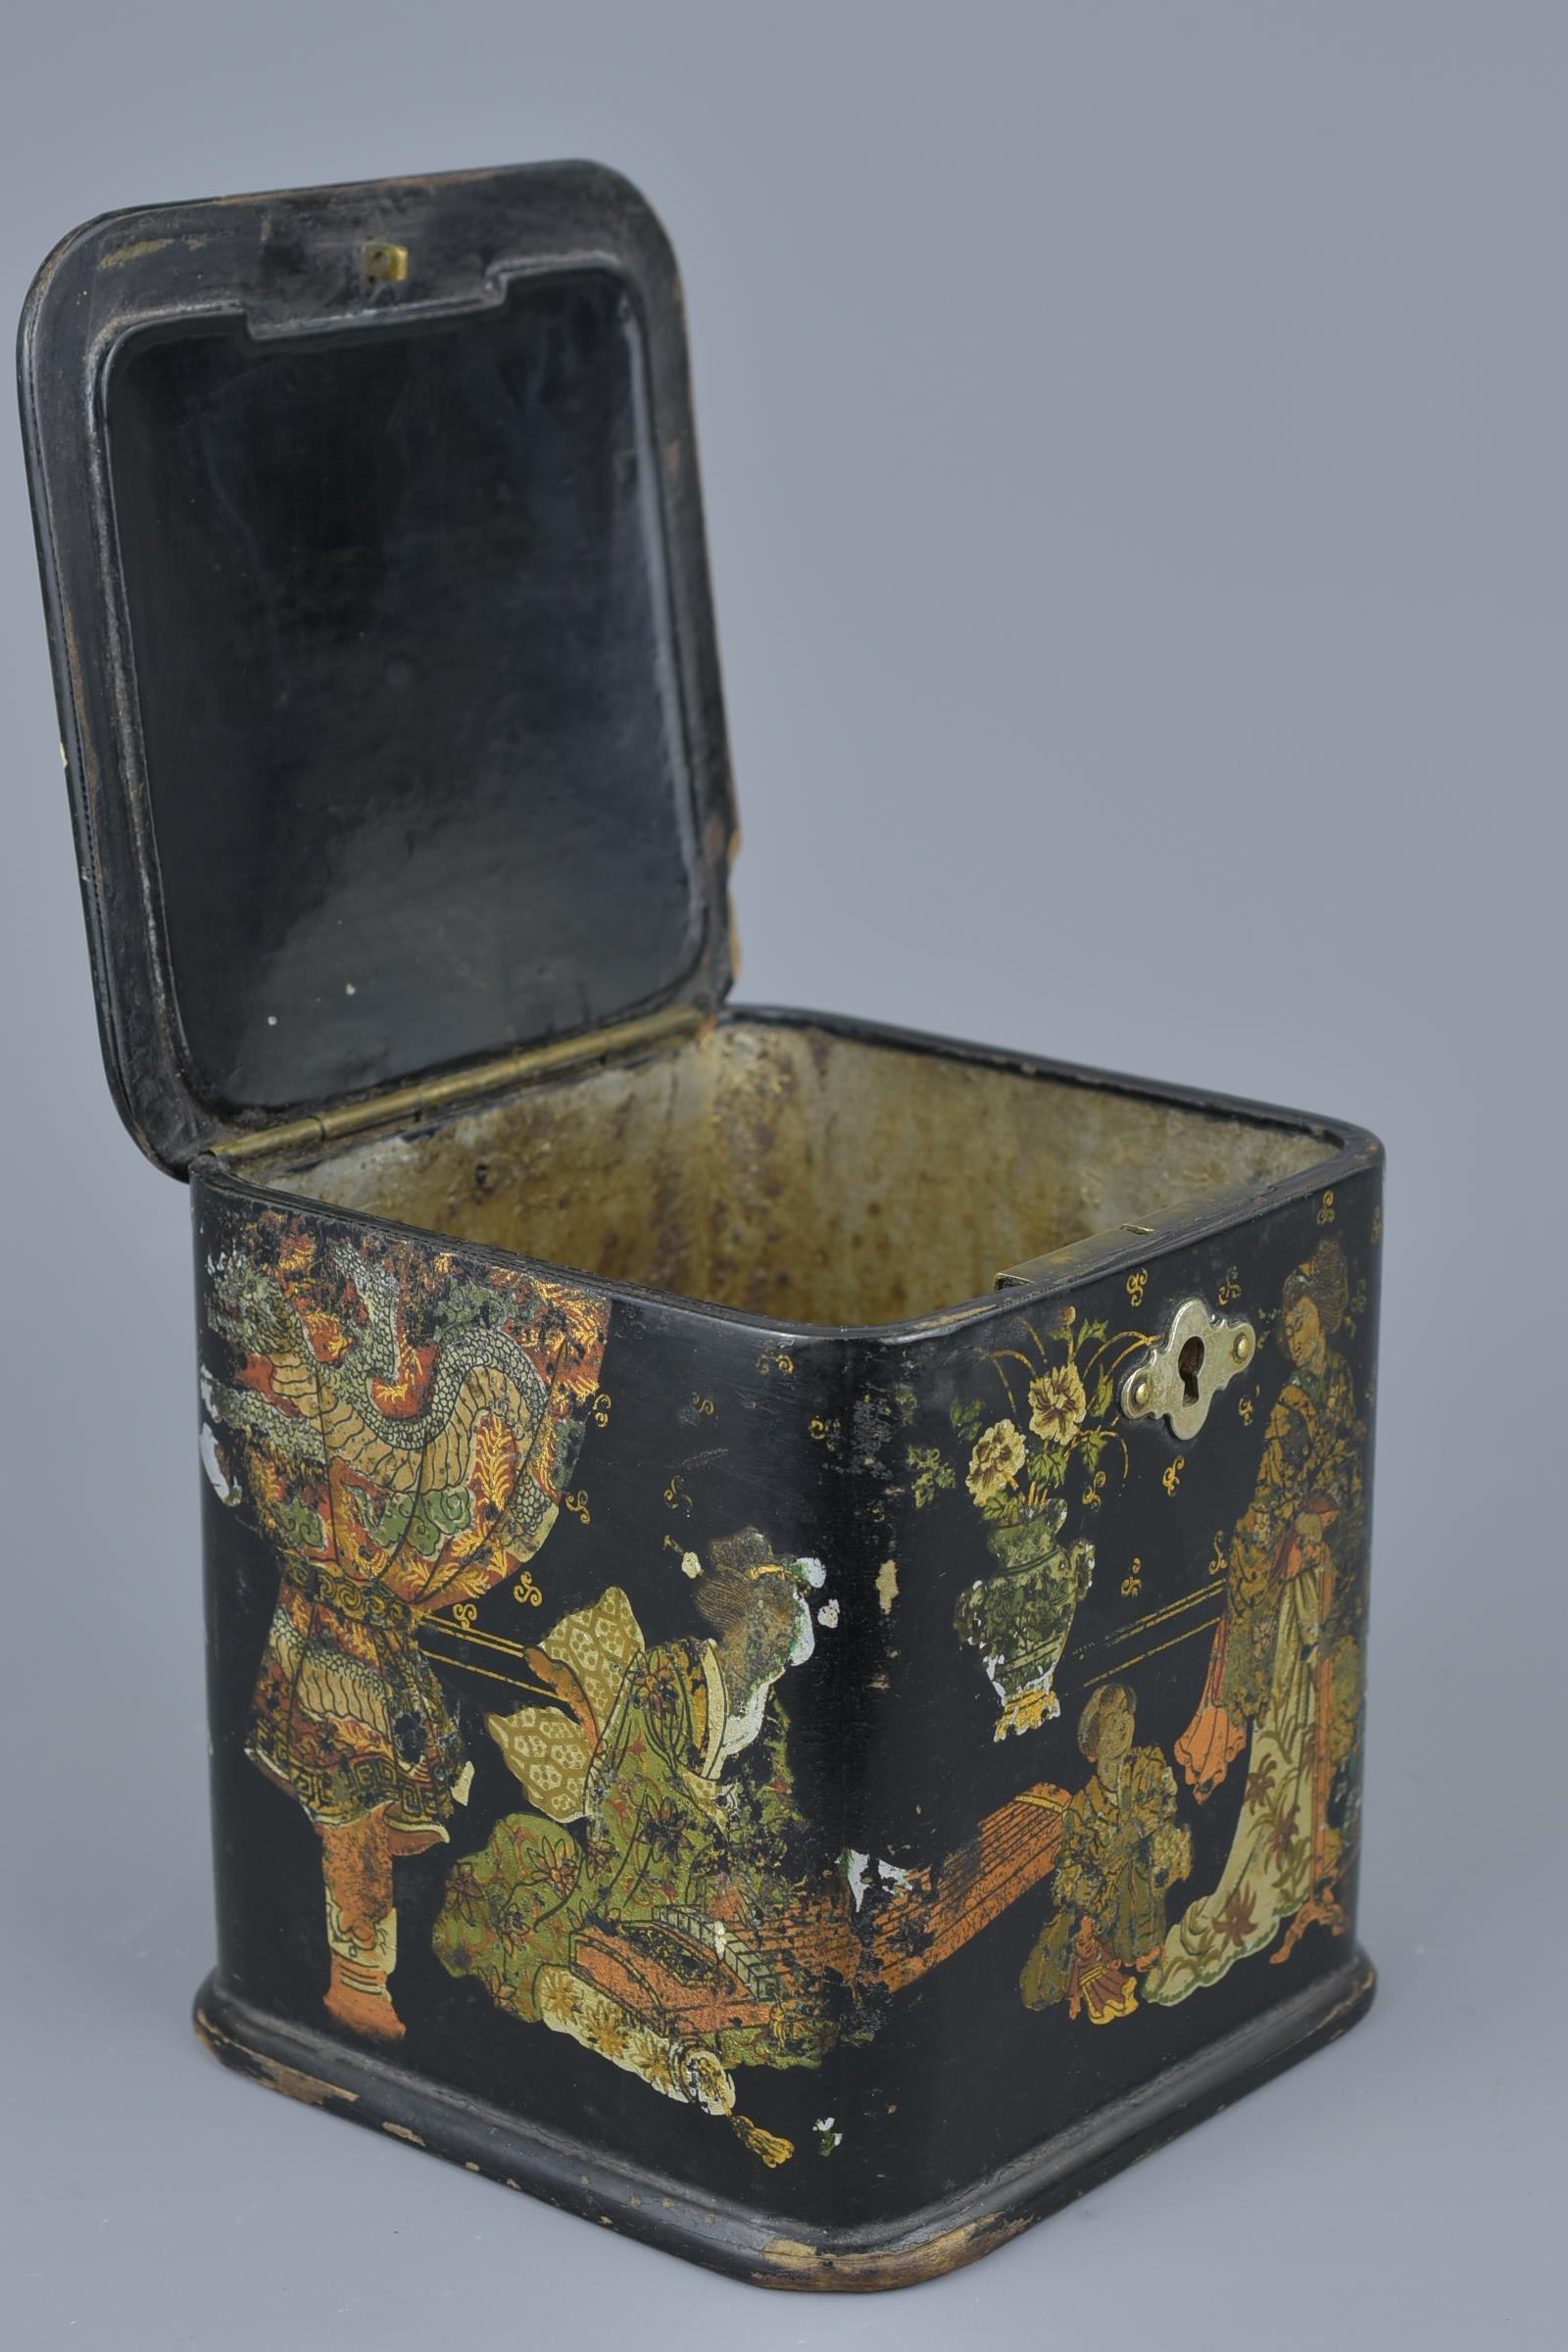 Lot 27 - A Japanese lacquer Tea Caddy with Gold Gilding decorated with figures in garden. 11cm x 11cm